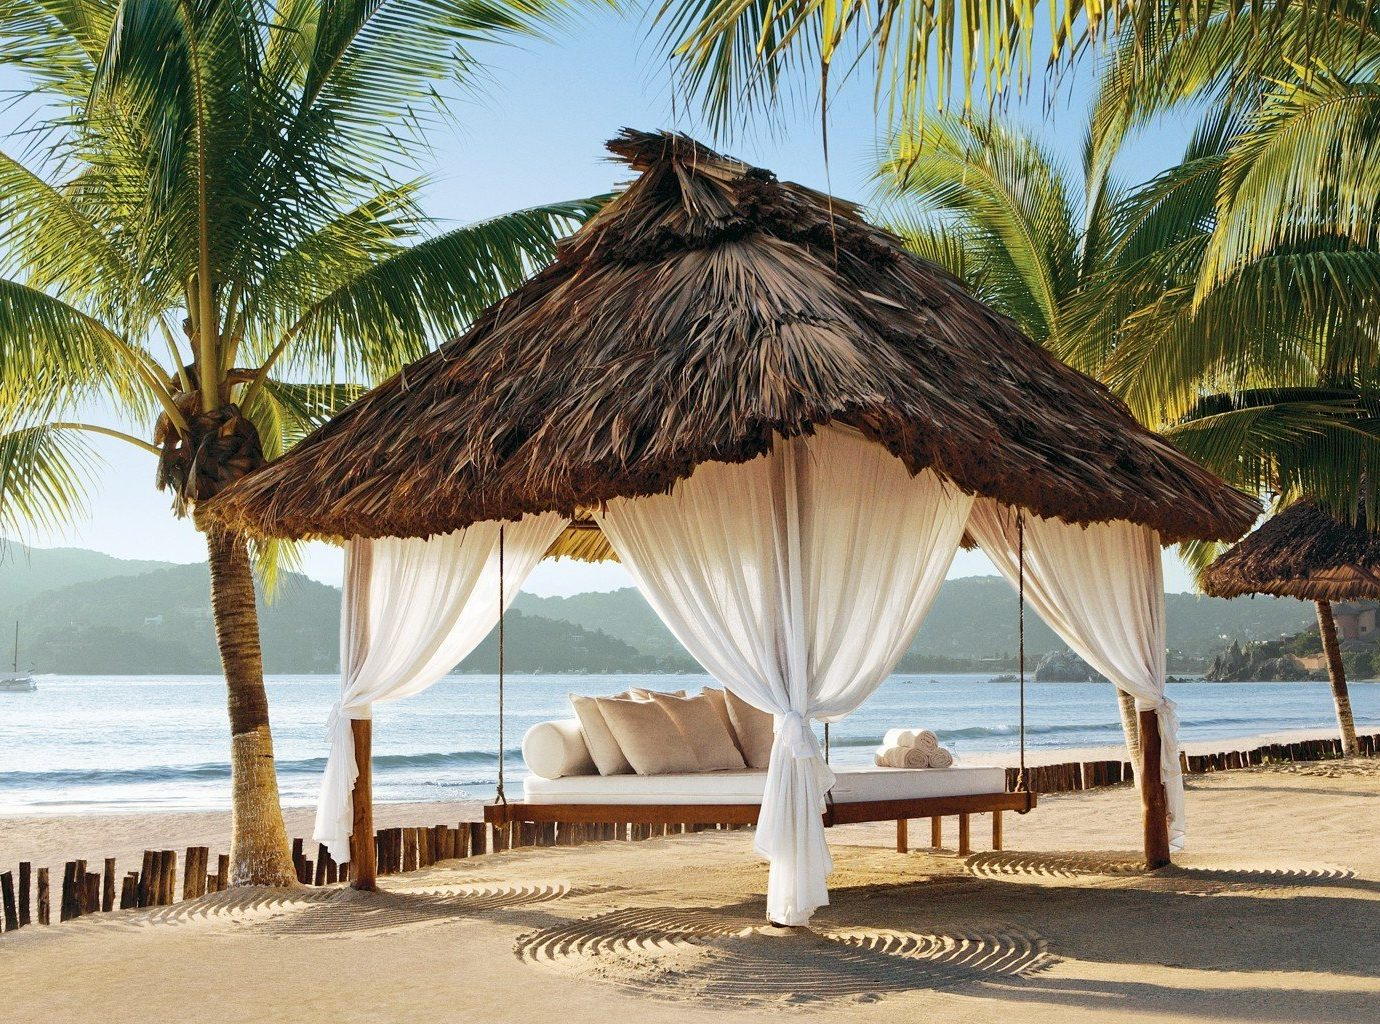 Zihuatanejo mexico lawn hut on sandy beach